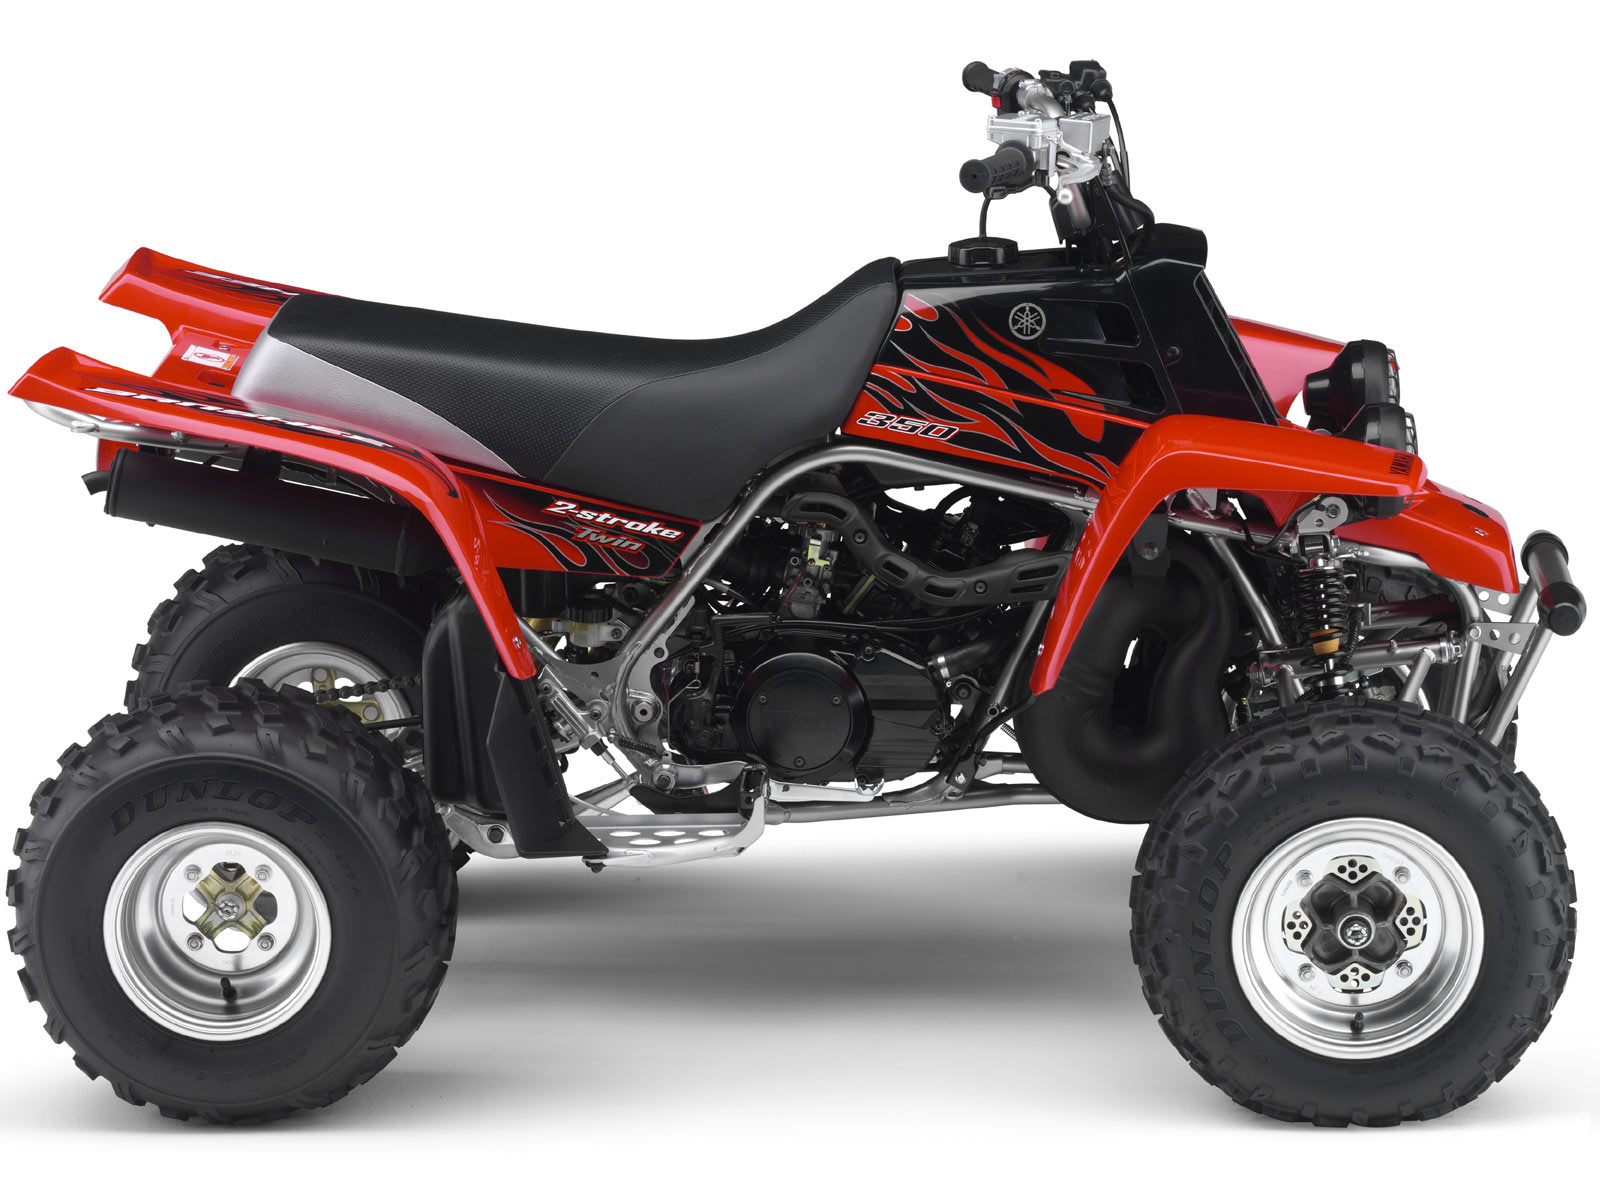 2007 Yamaha Raptor 700 Wiring Diagram Split Charge Relay Atv Pictures 2006 Banshee 350 Accident Lawyers Info Specifications